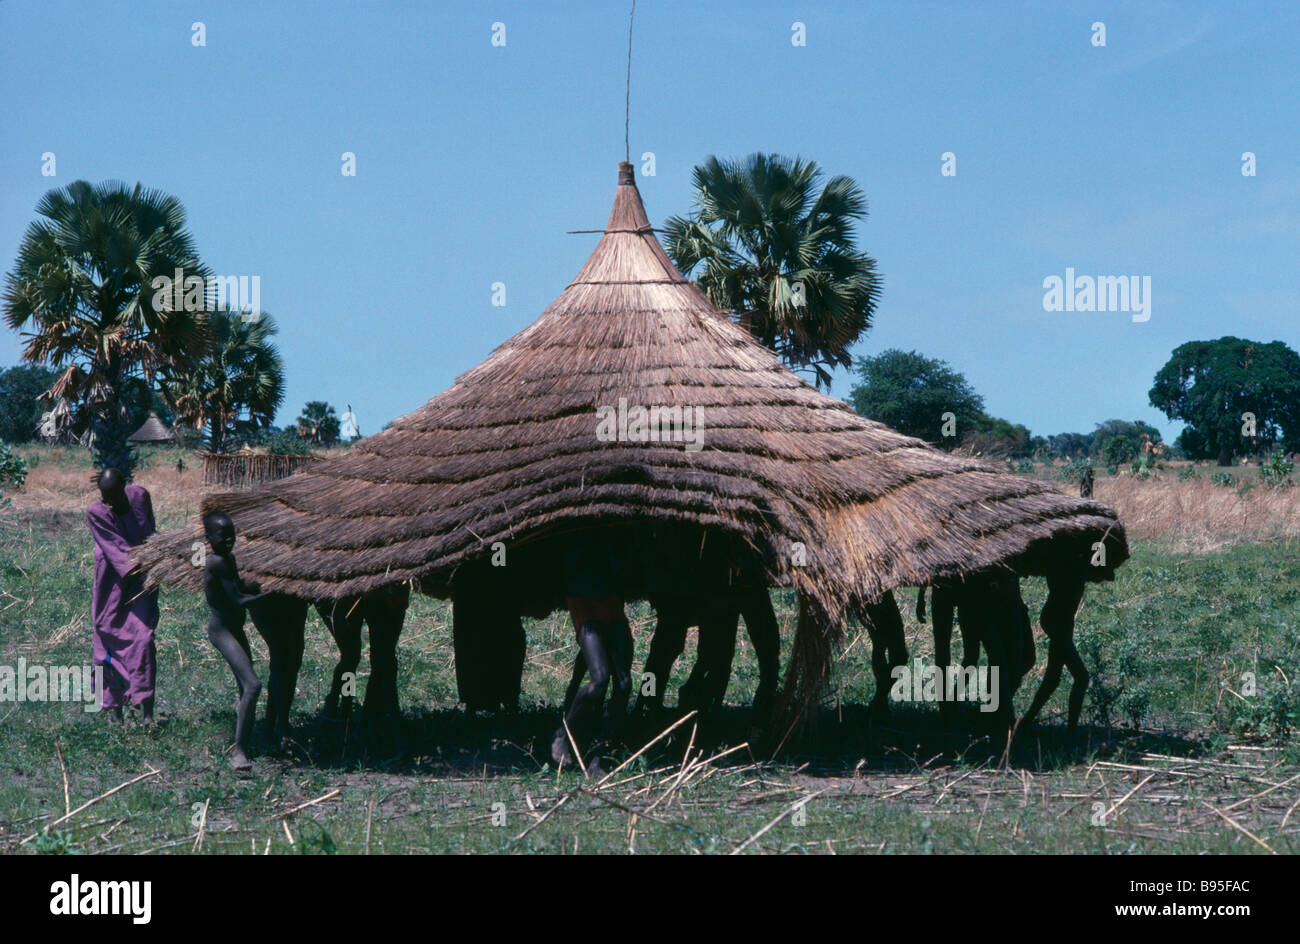 SUDAN Horn Of Africa Architecture Dinka tribe people moving circular thatched roof of hut. - Stock Image